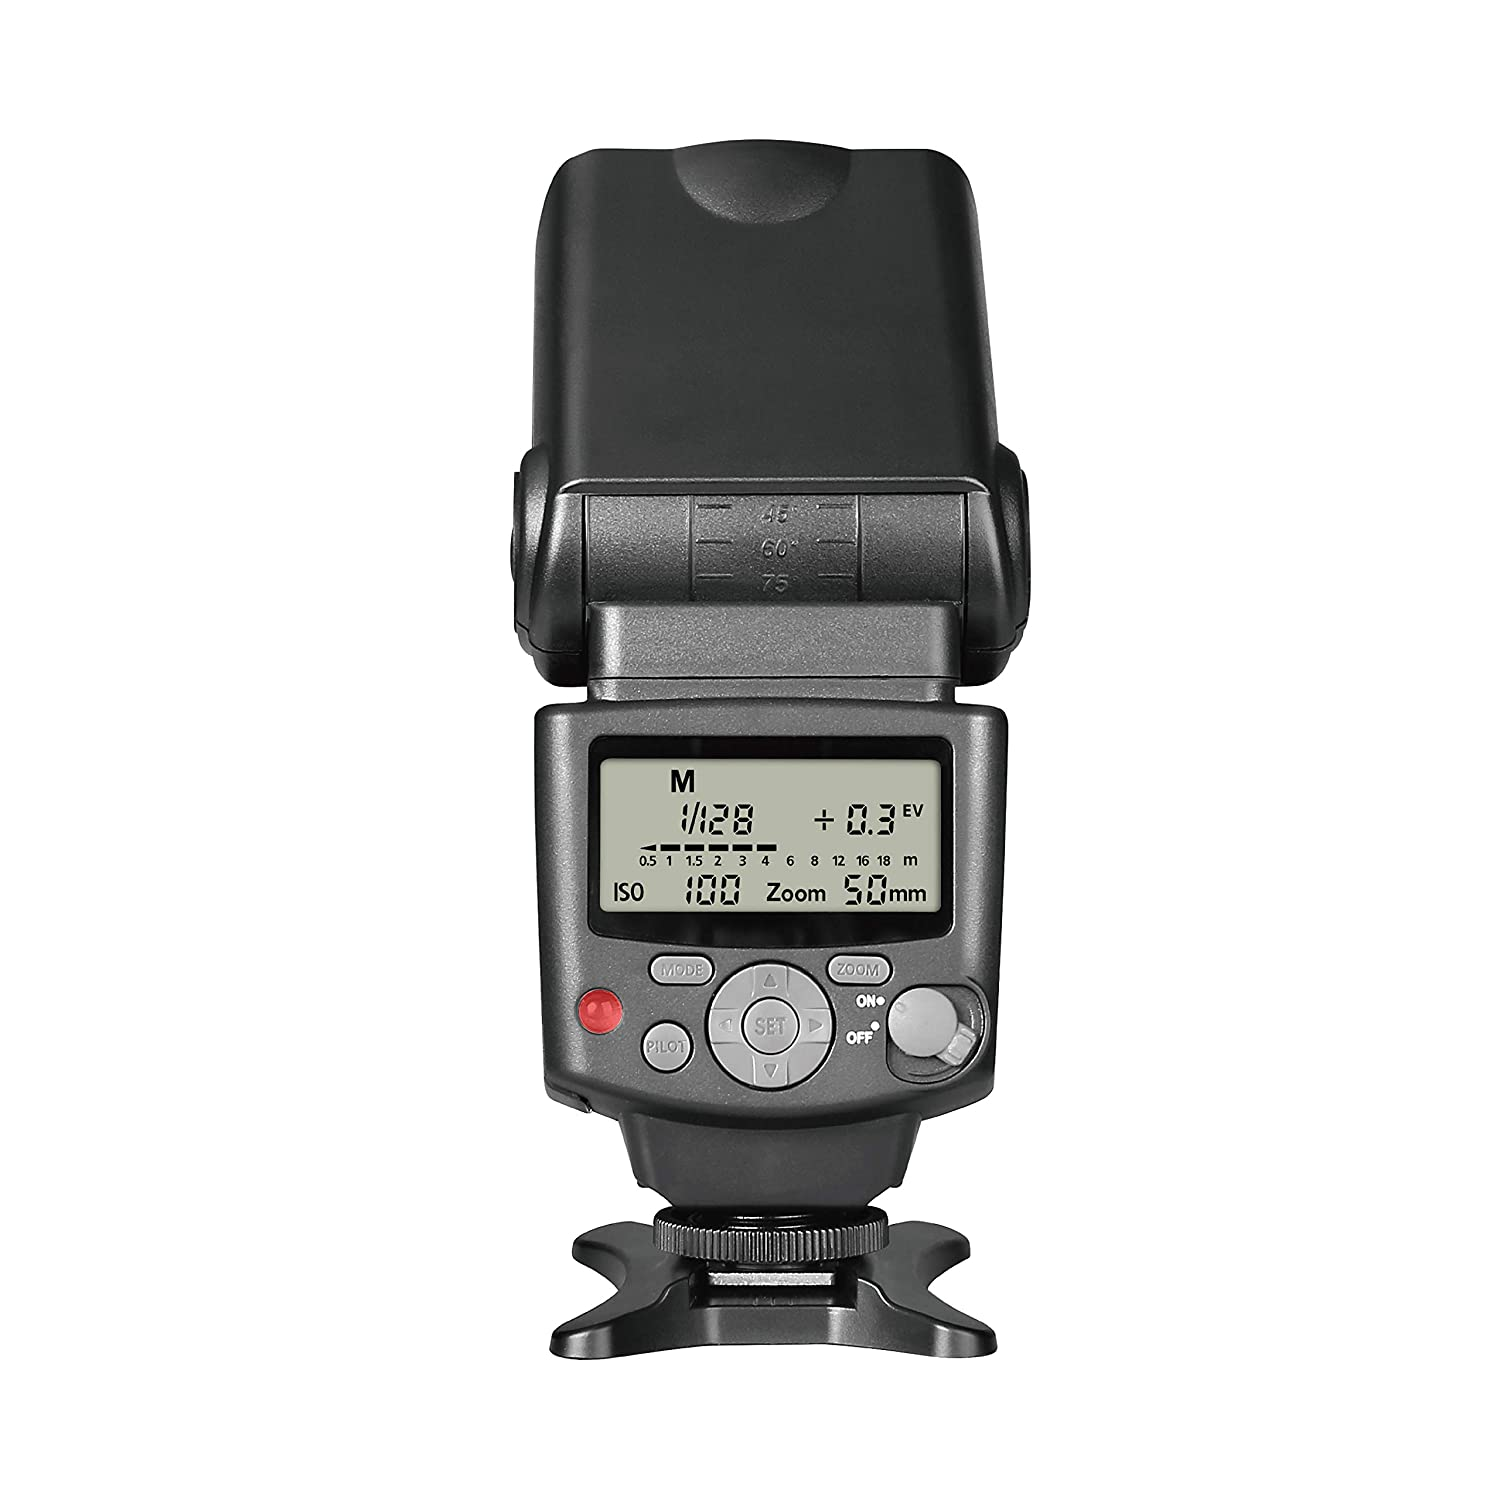 Voking VK430 I TTL Speedlite LCD Display Shoe Mount Flash for Nikon D3400 D3300 D3200 D5600 D850 D750 D7200 D5300 D5500 D500 D7100 D3100 and Other Digital DSLR Cameras with Standard Stand